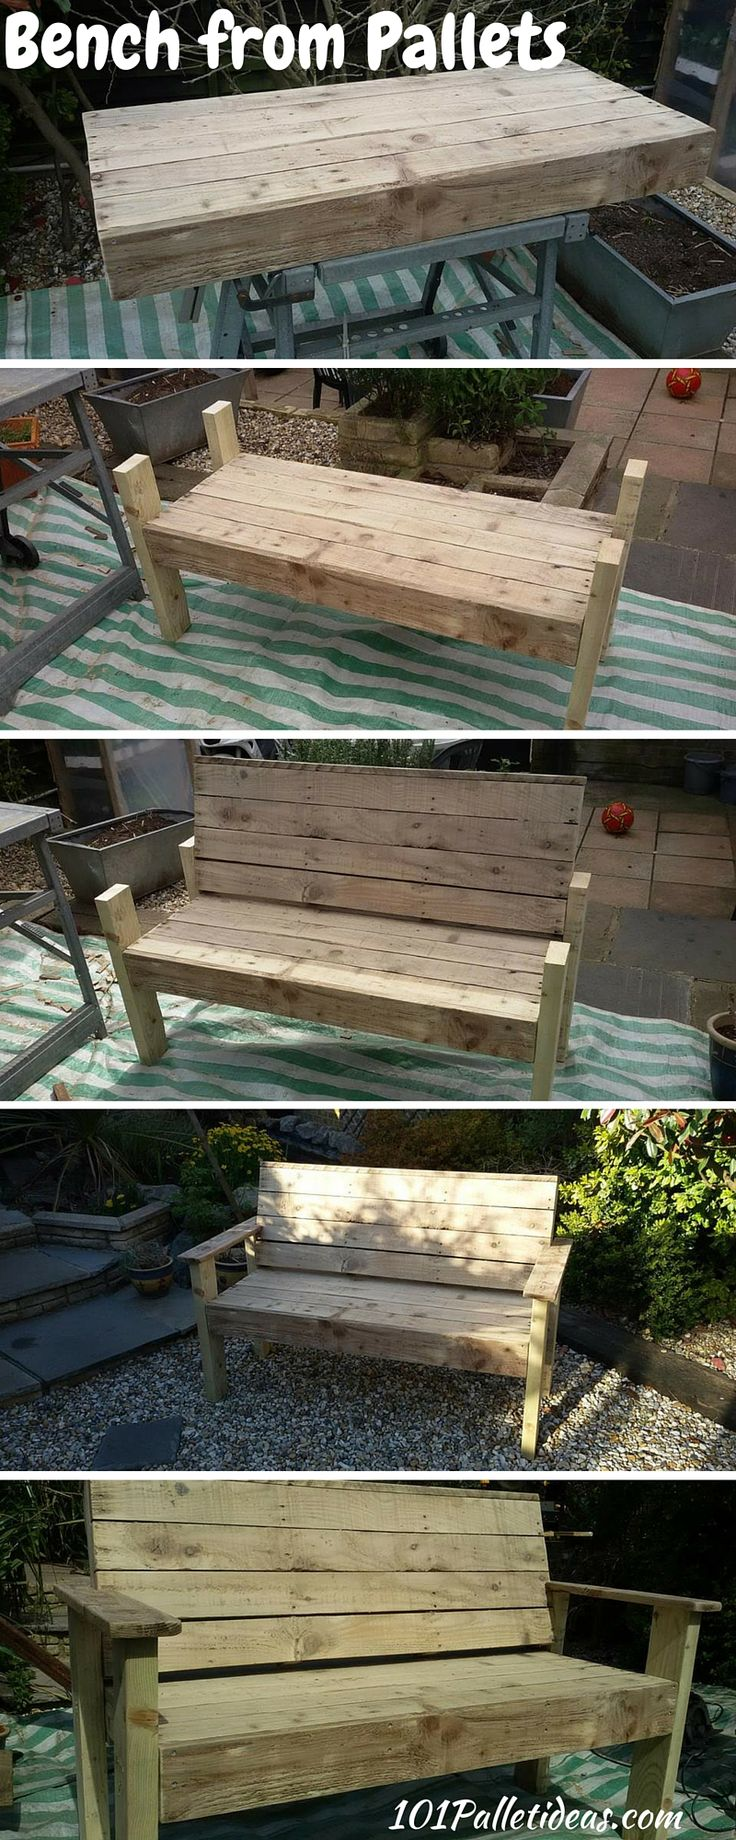 Bench from Pallets: Tutorial